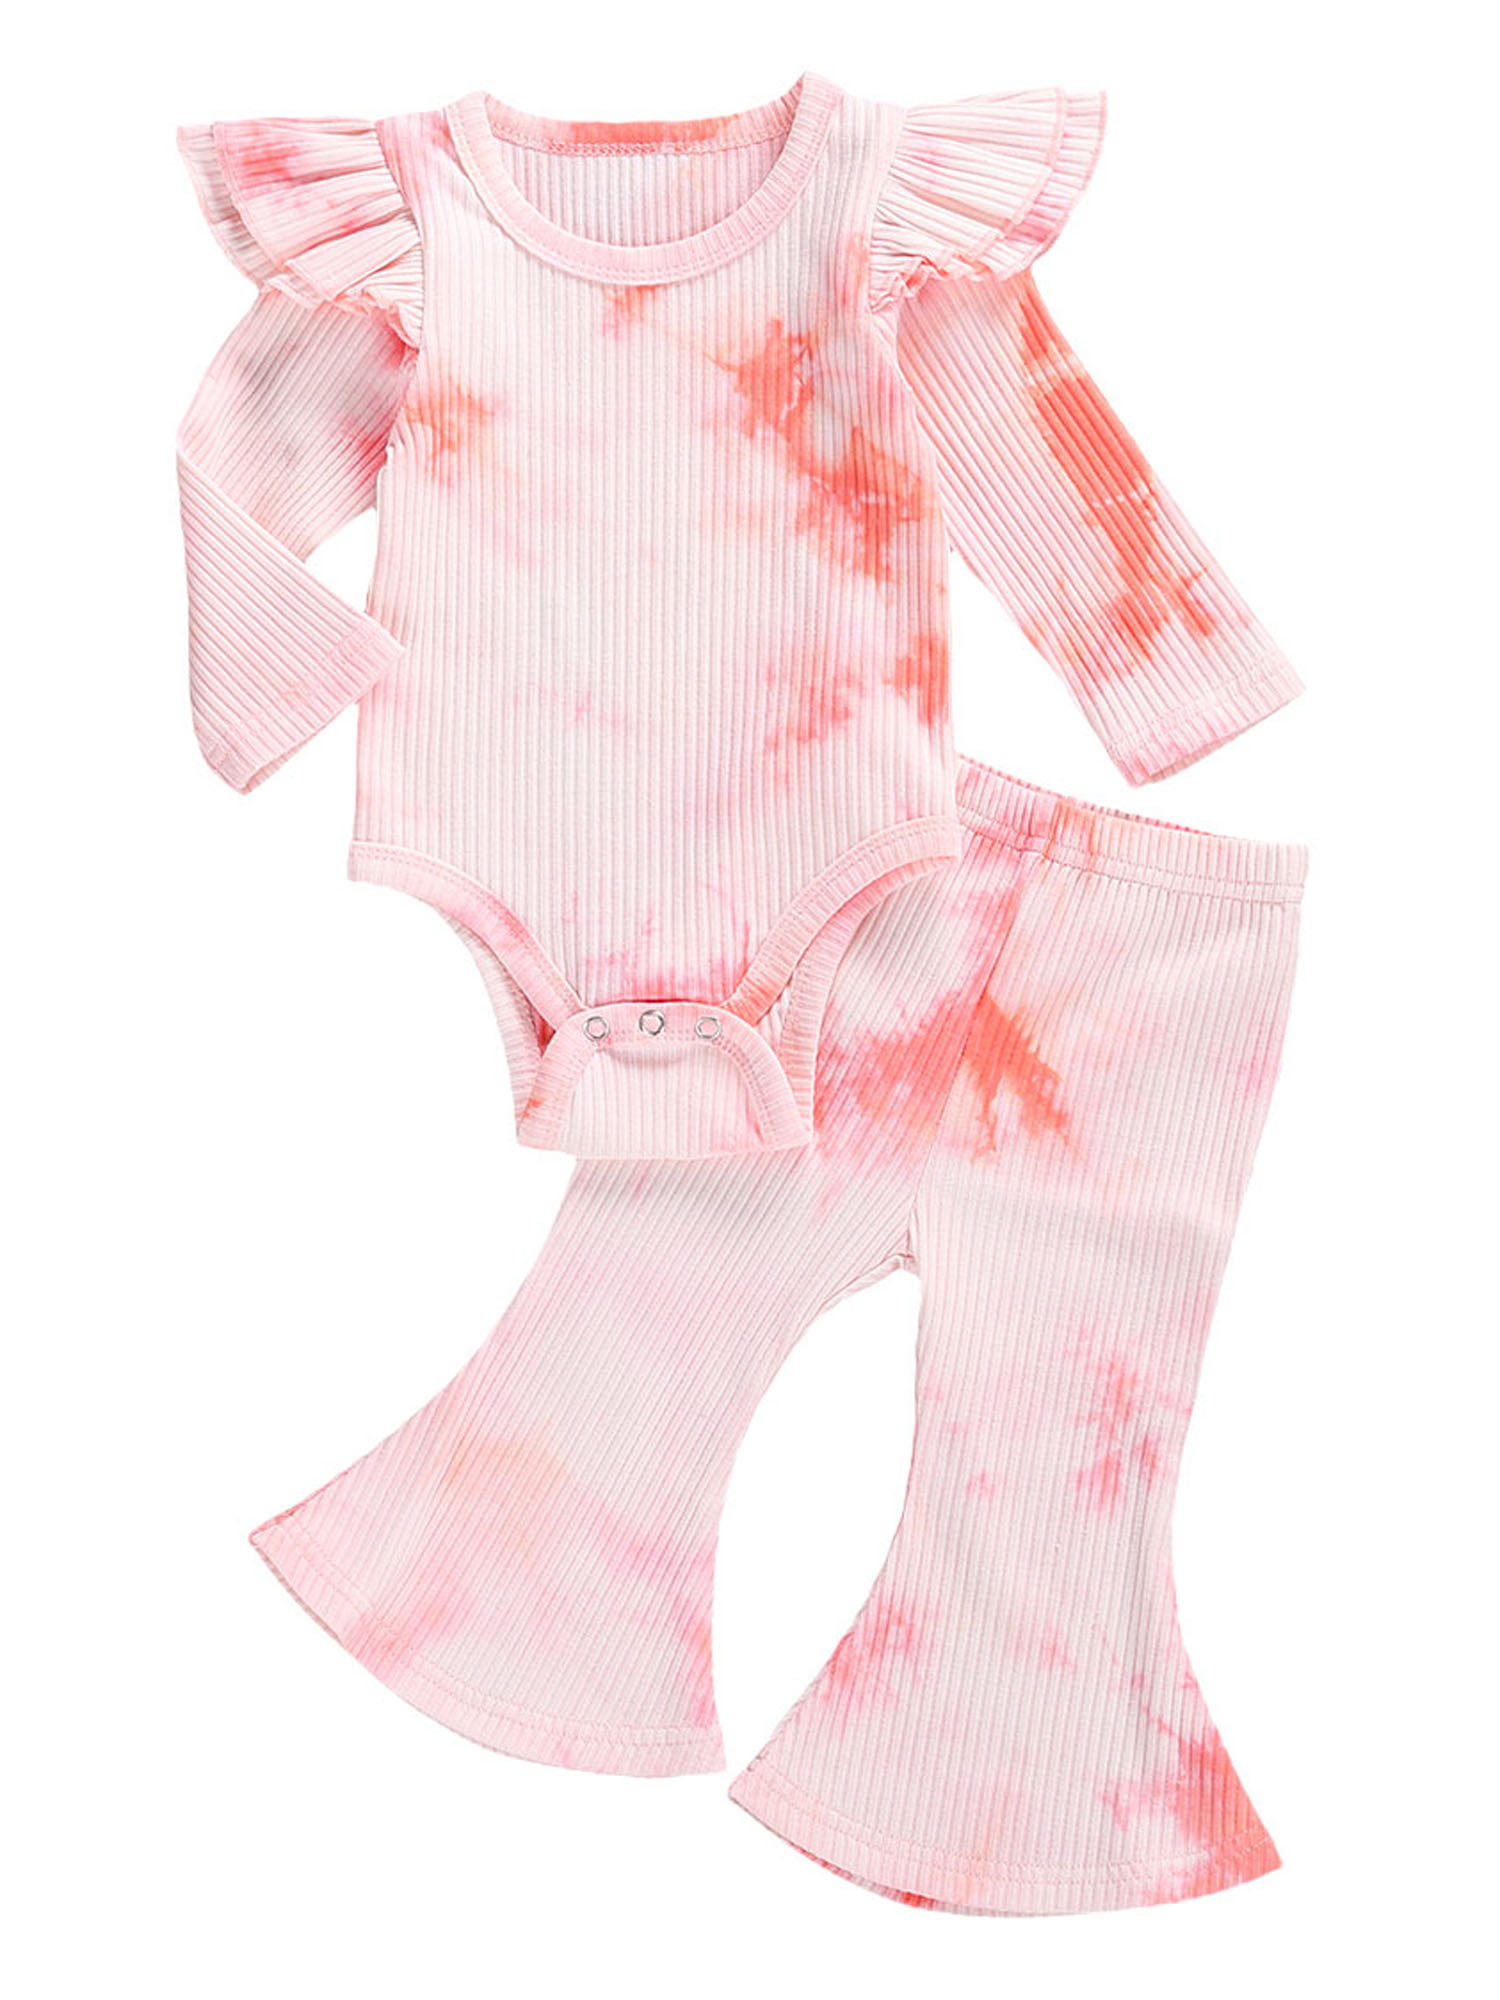 Baby Girl 2 Piece Pyjamas Long Sleeve Ruffle Romper Bodysuit and Pants Fall Winter Outfit Clothes Set